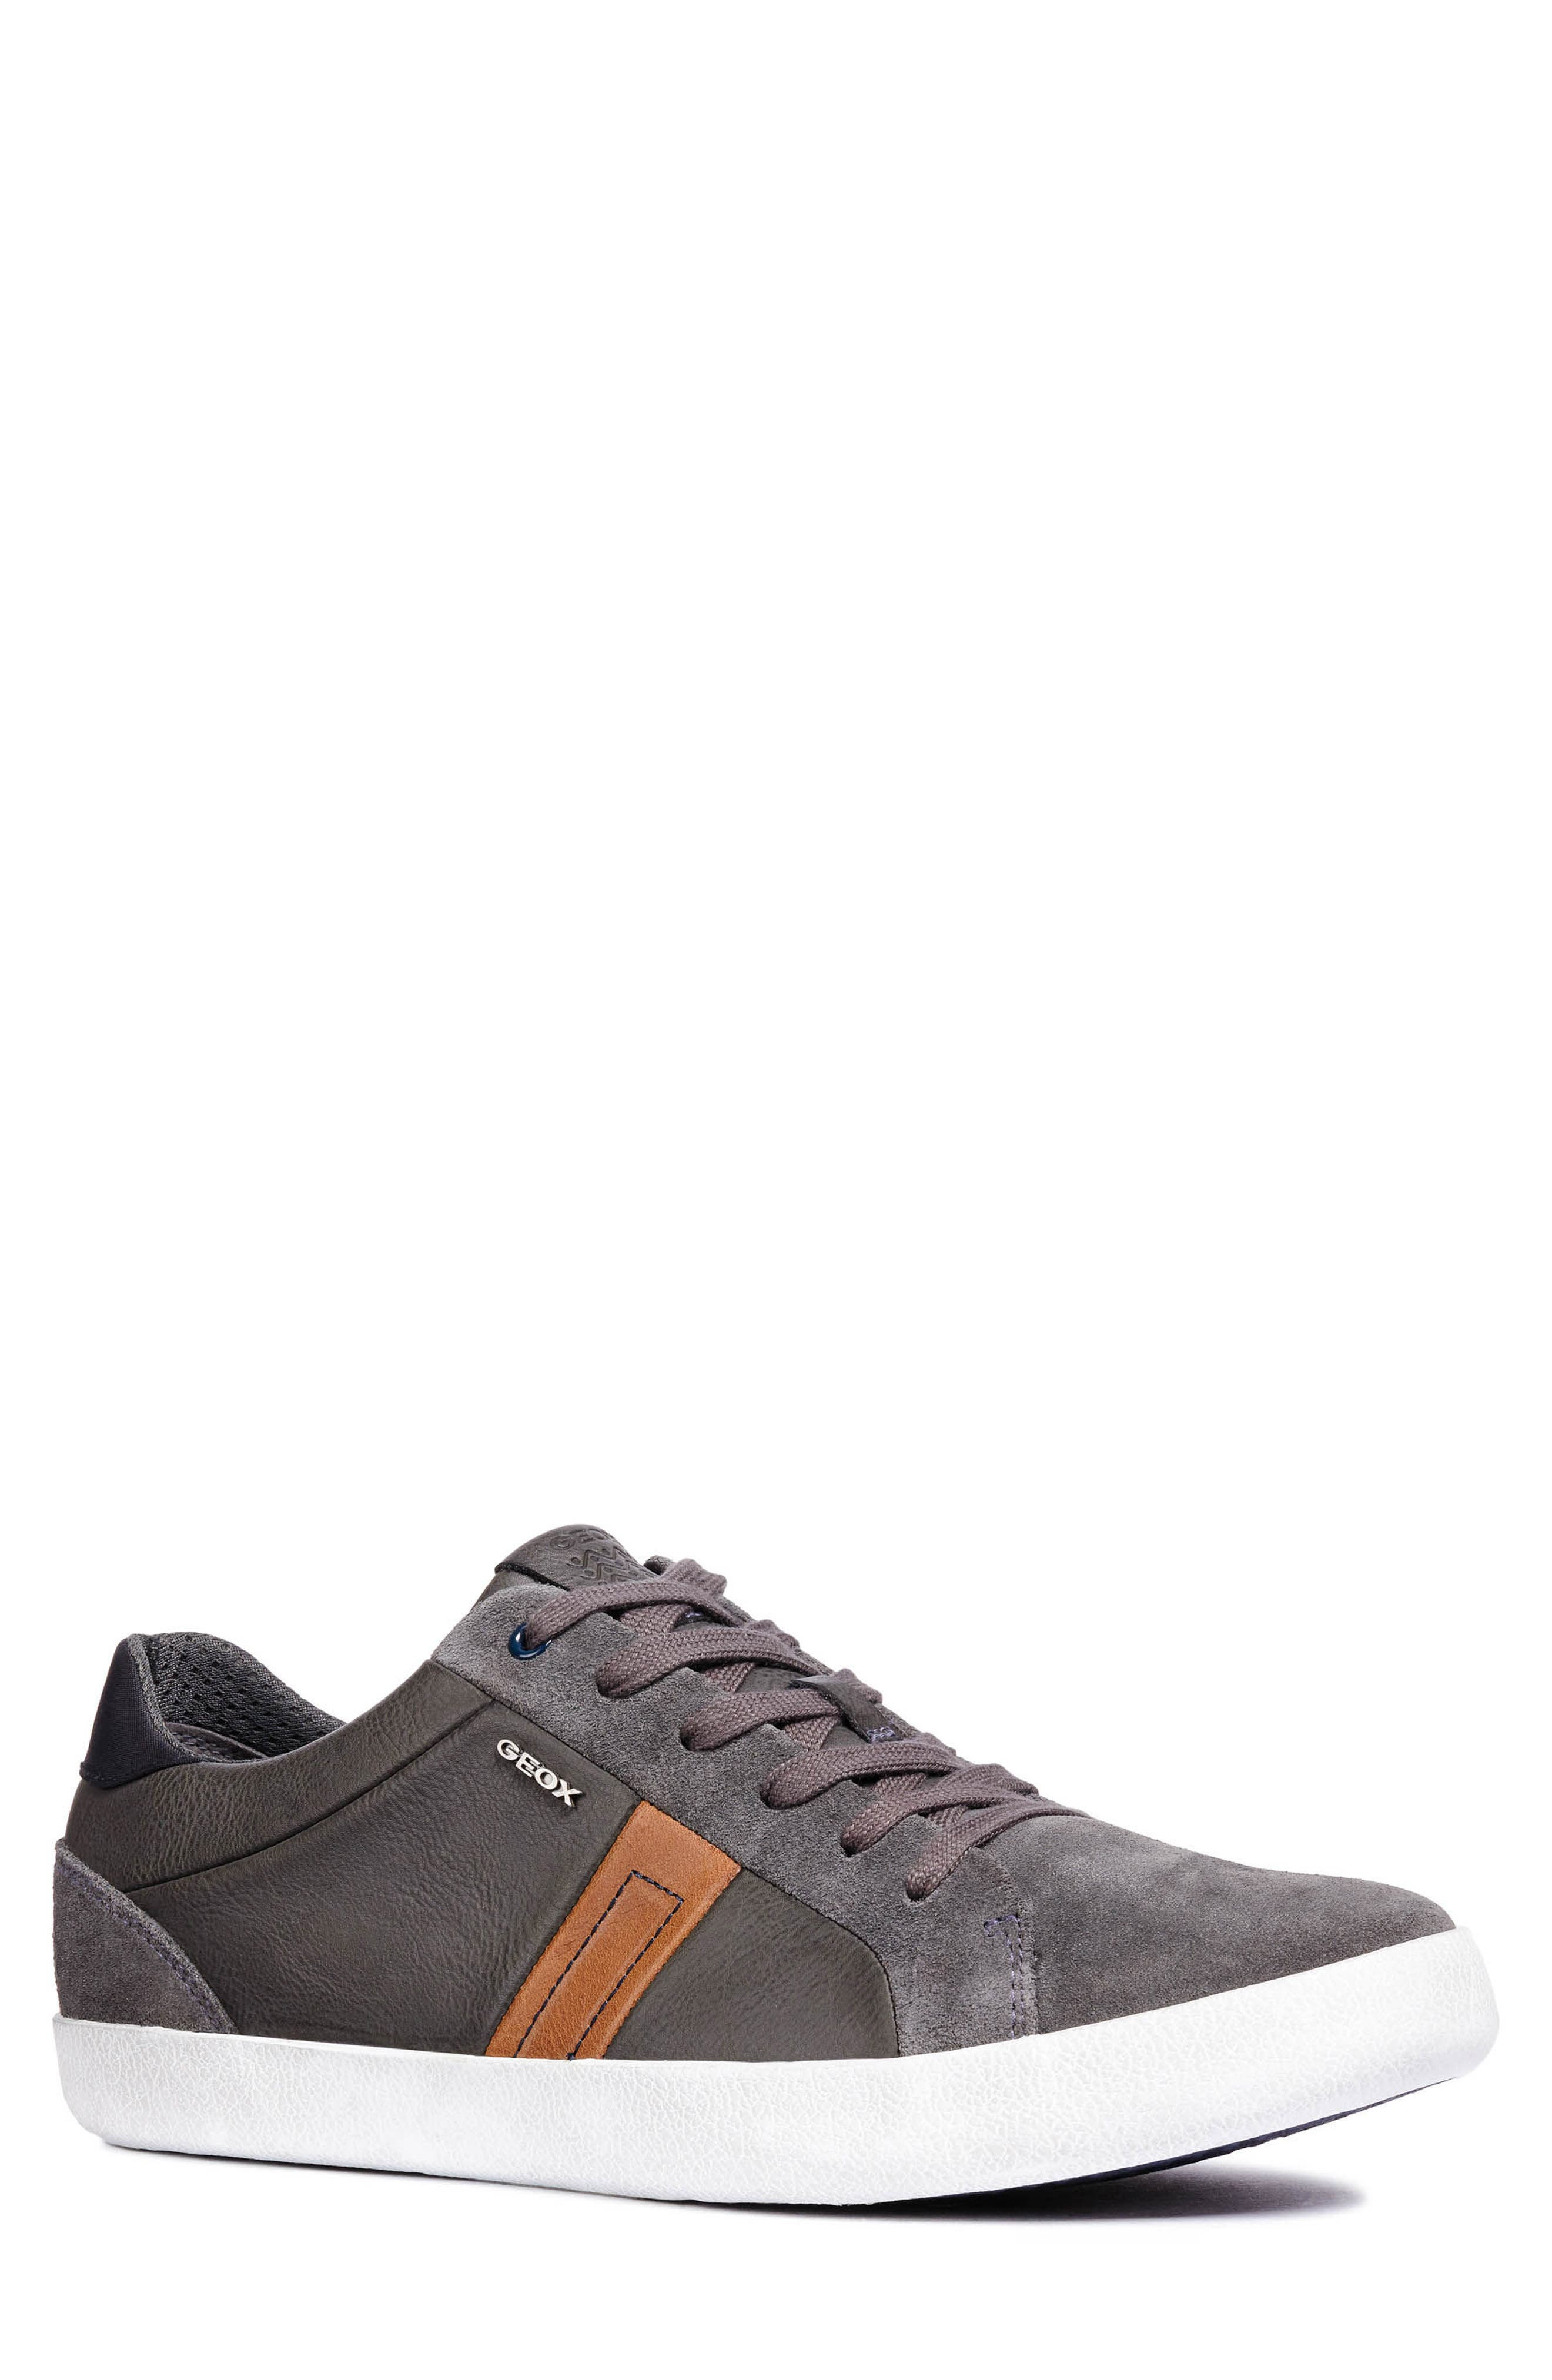 Box 40 Low Top Sneaker,                             Main thumbnail 1, color,                             ANTHRACITE LEATHER